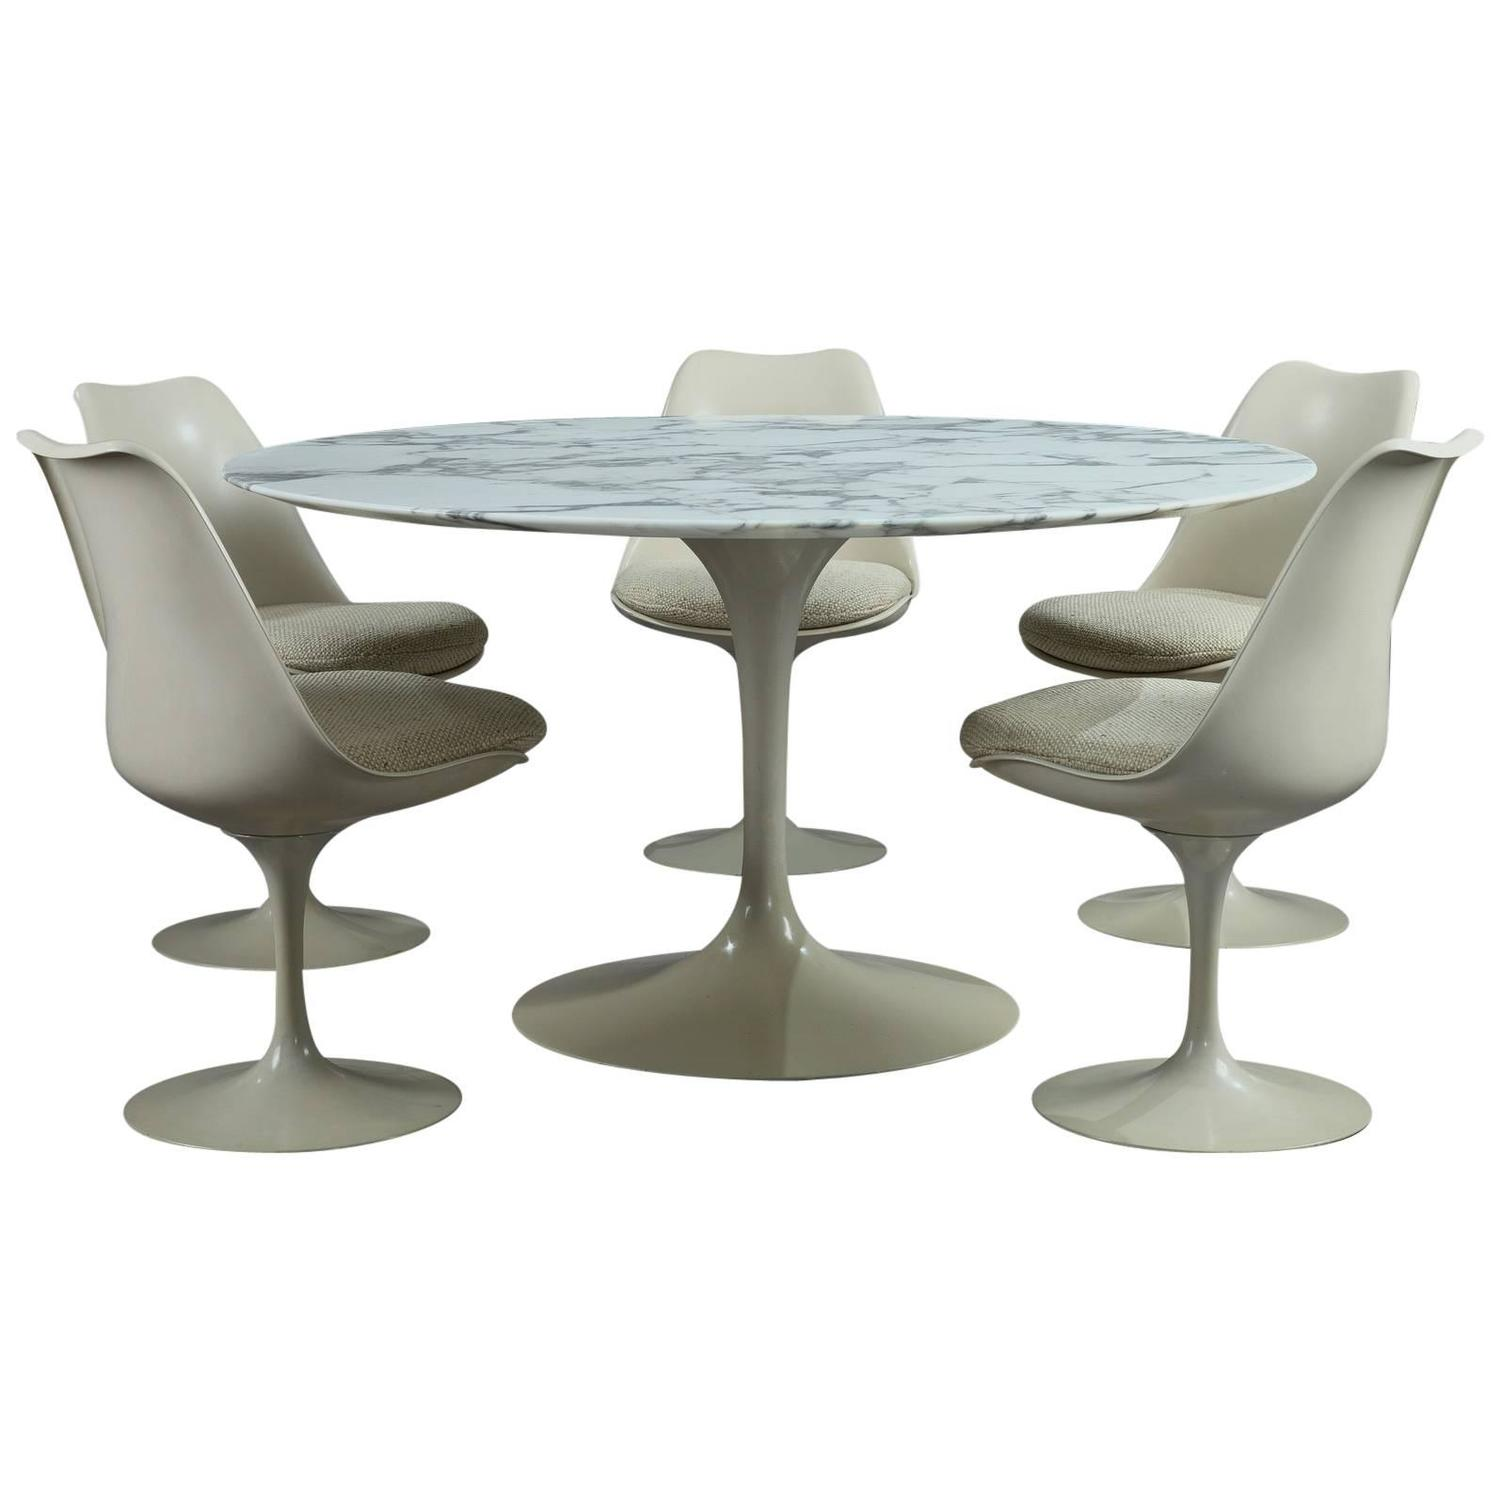 Tulip Dining Table And Set Of Five Tulip Seats By Eero